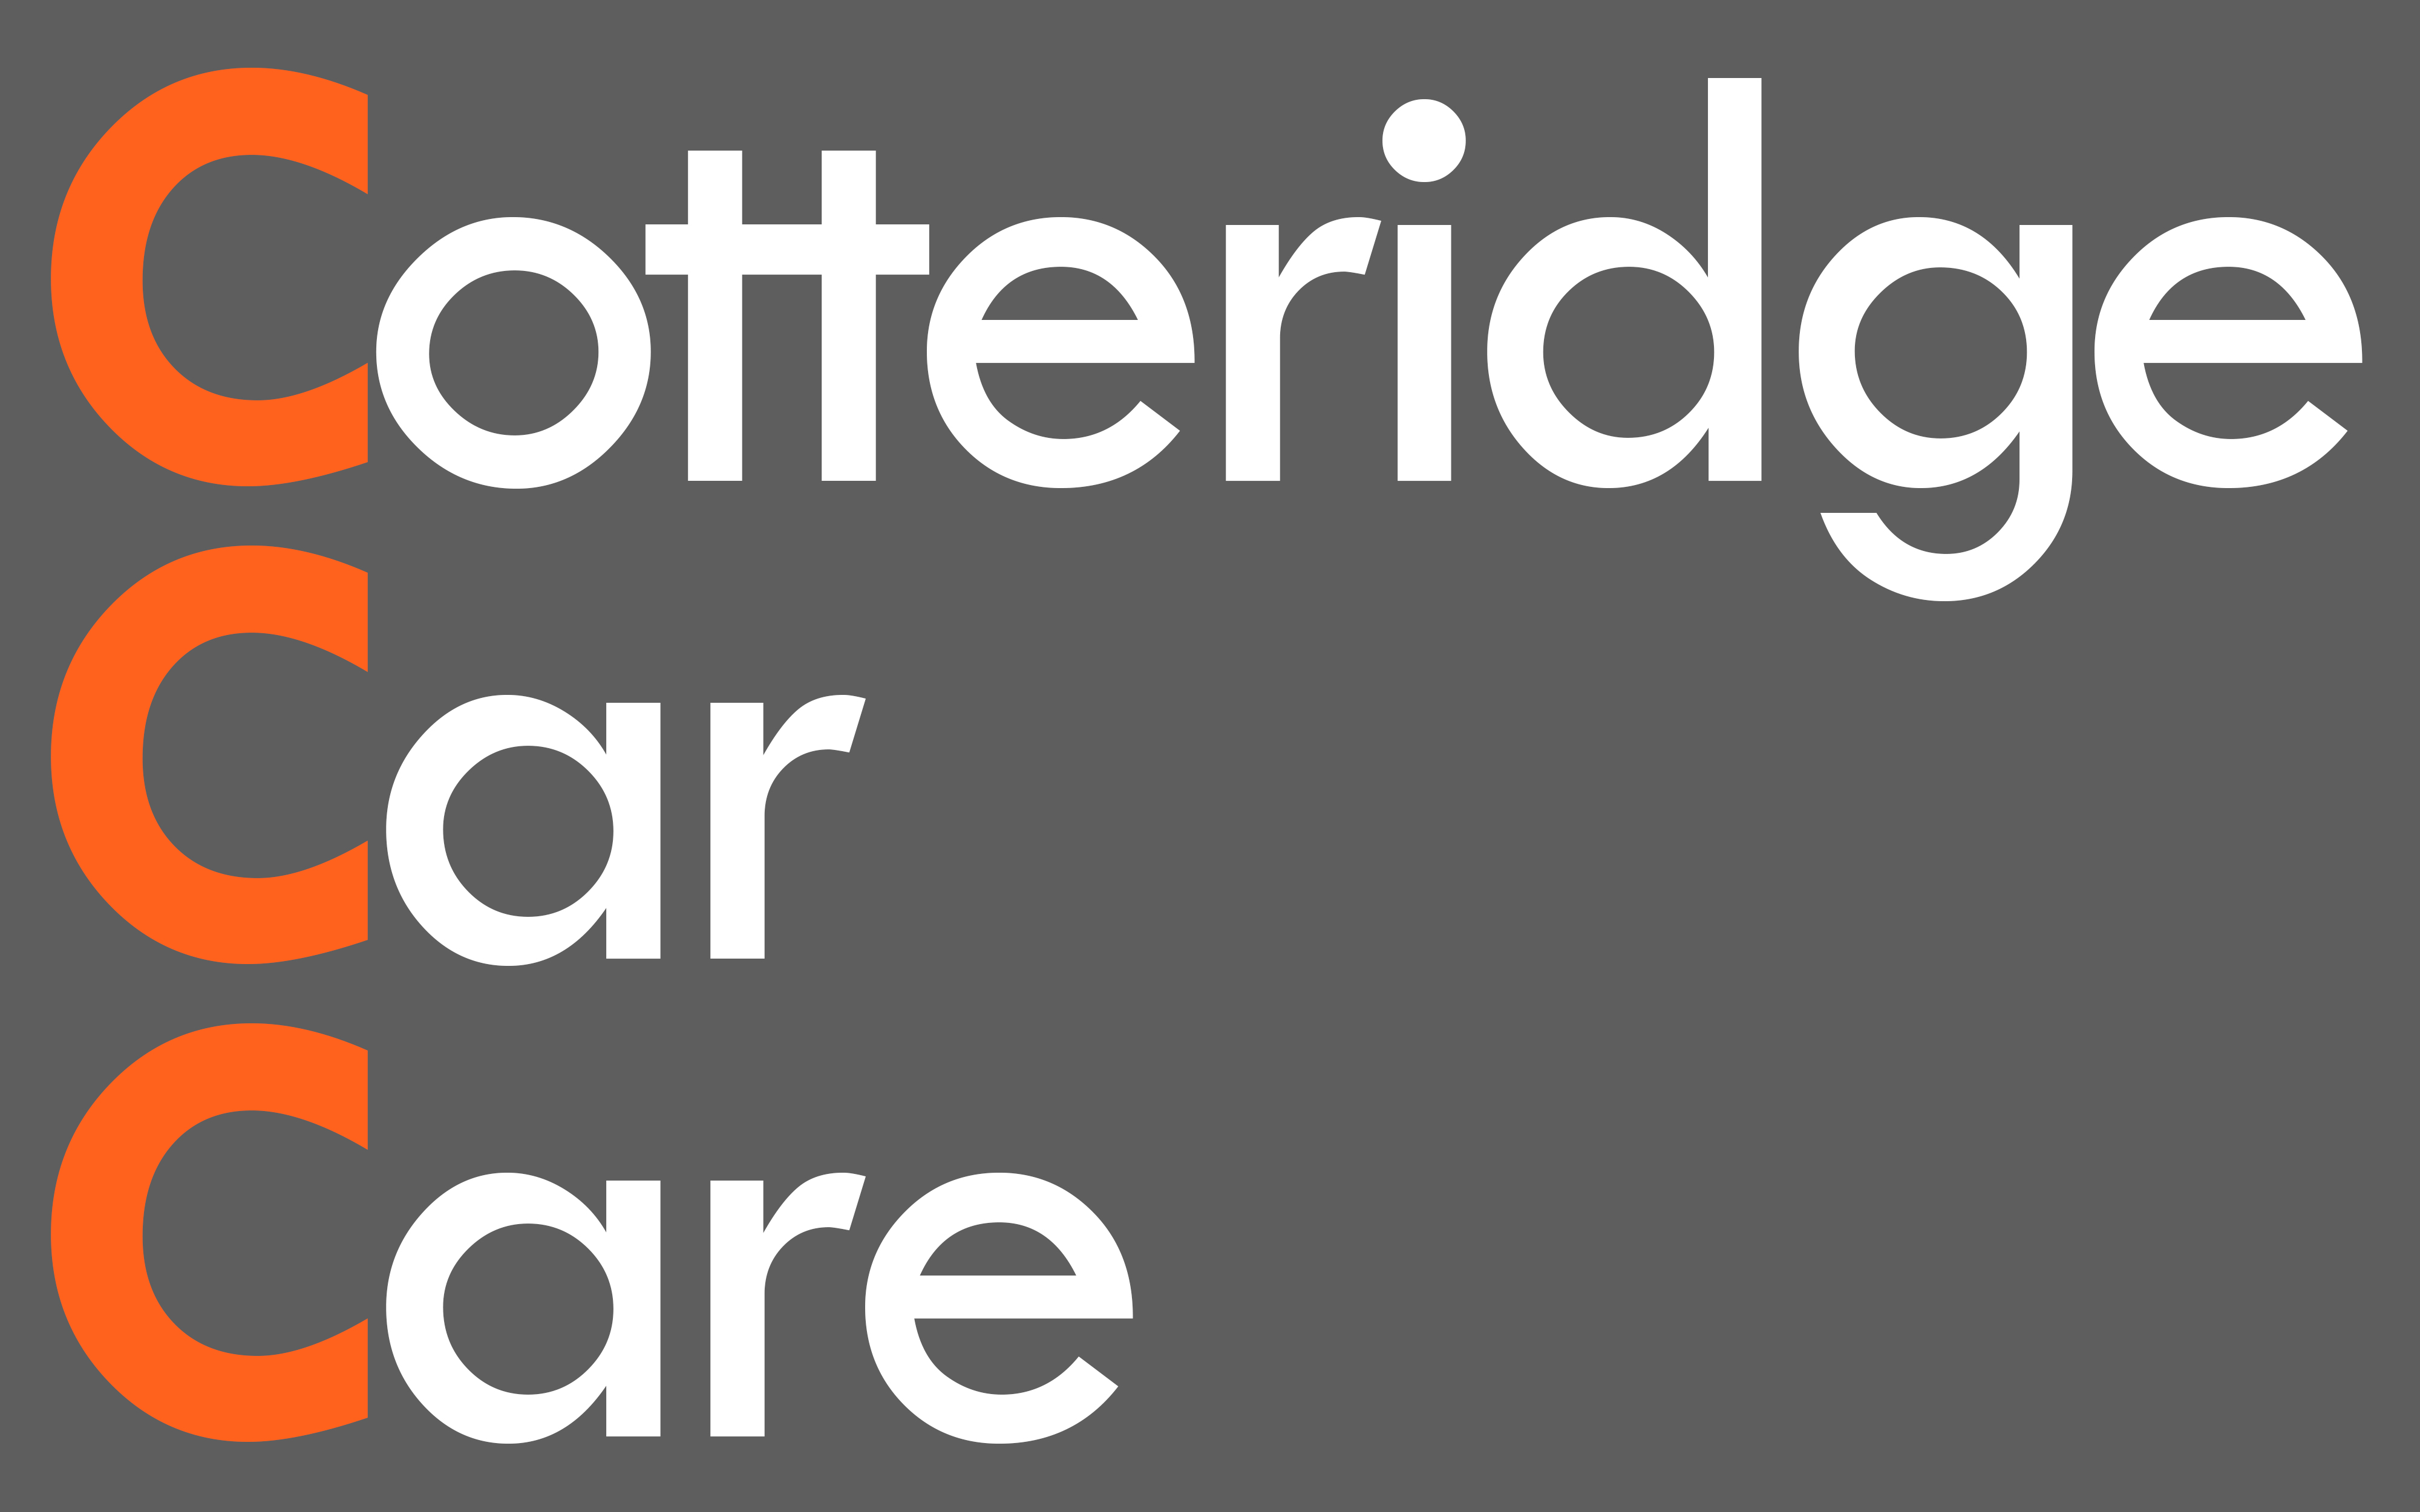 Cotteridge Car Care Logo